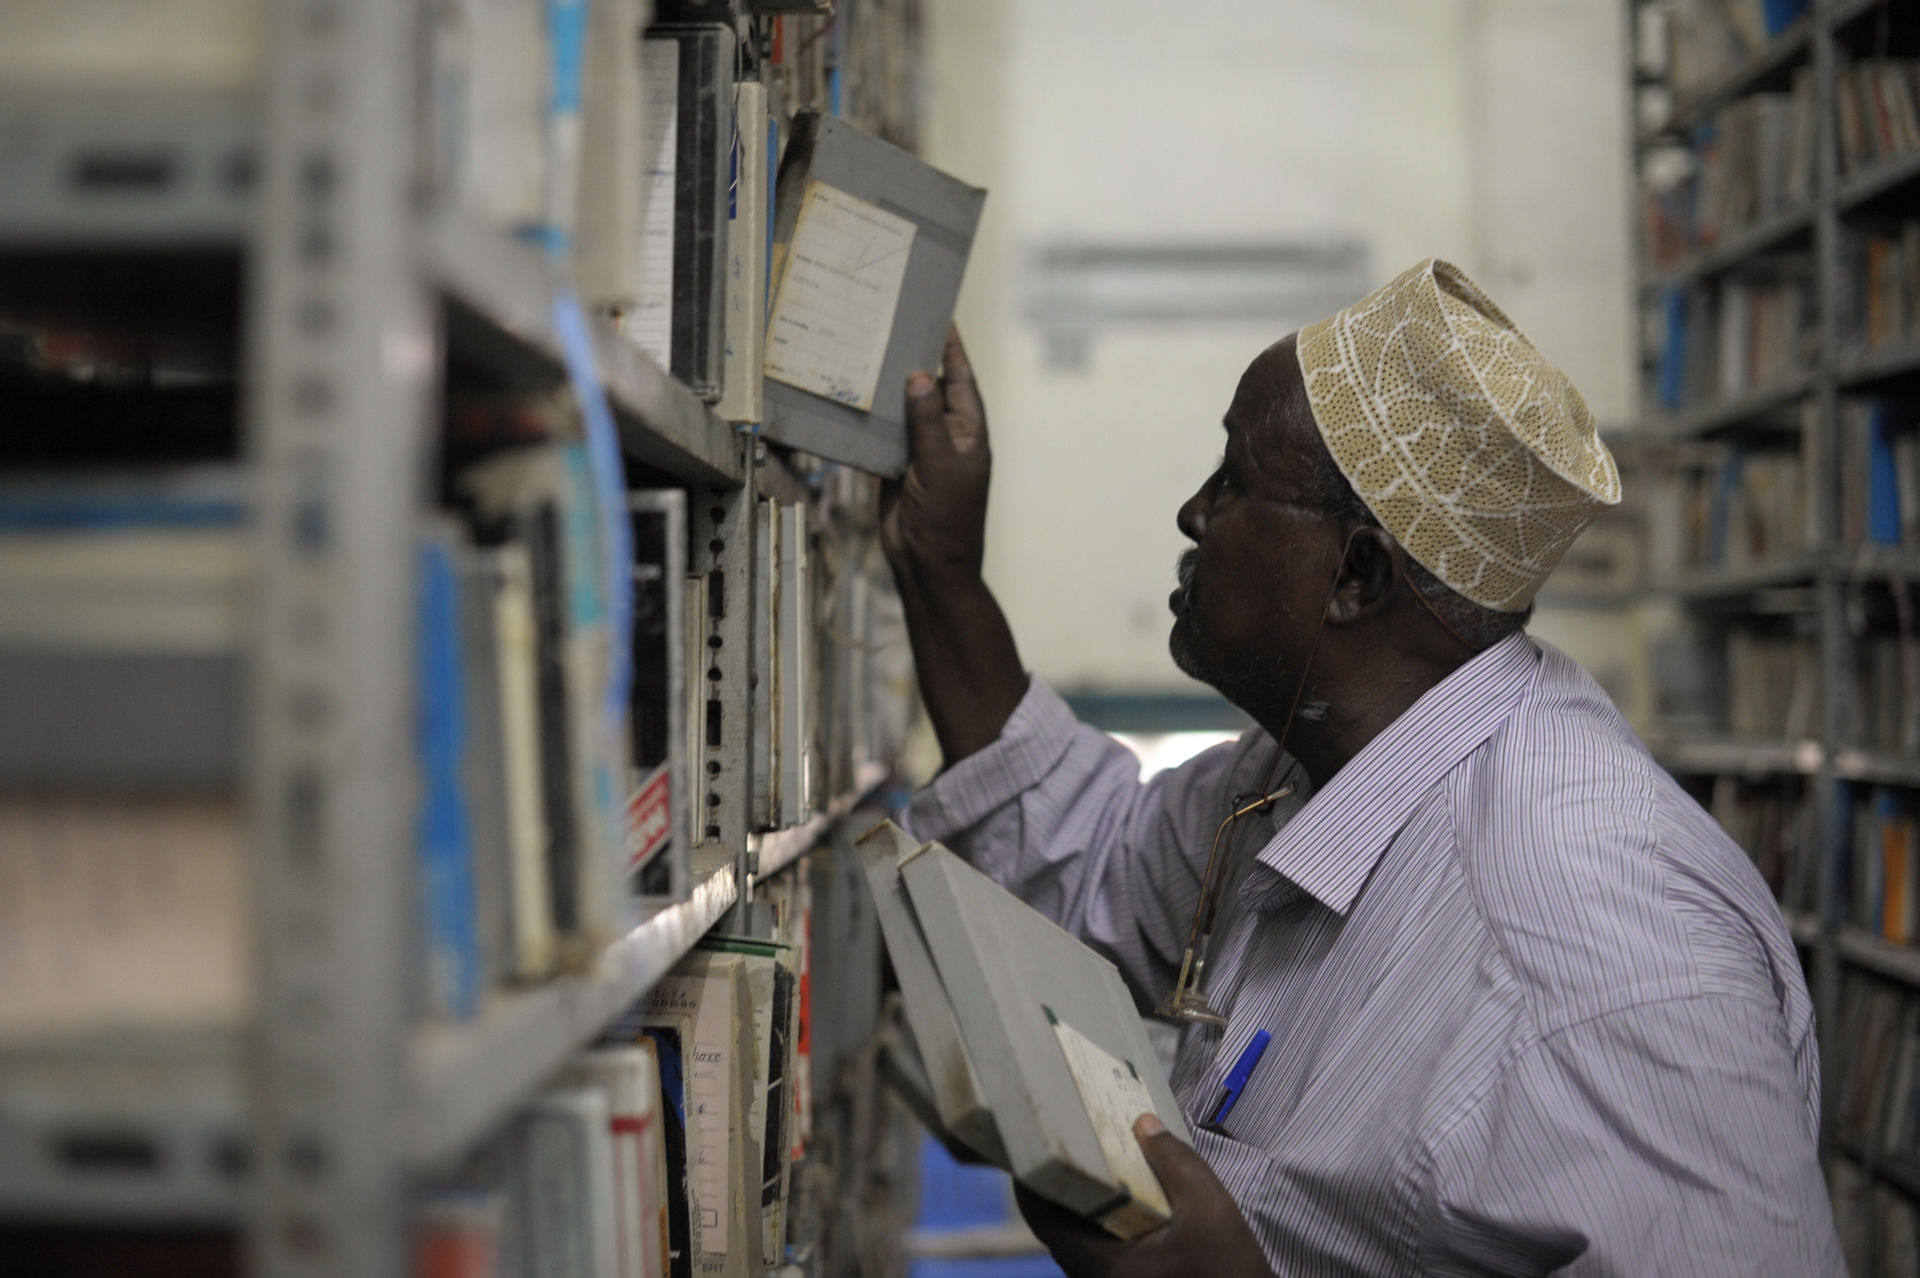 Africa, free, photo, library, books, reading, man, people, work, librarian, reader, education